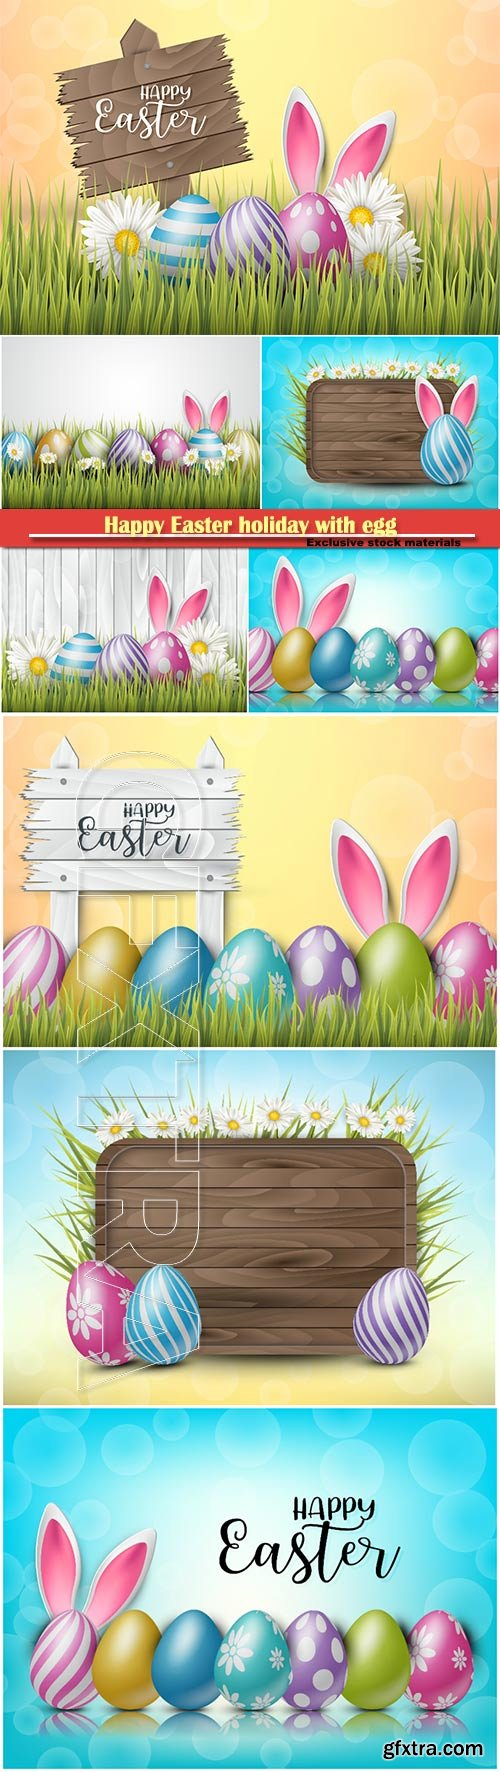 Happy Easter holiday with egg and spring flower vector illustration # 6